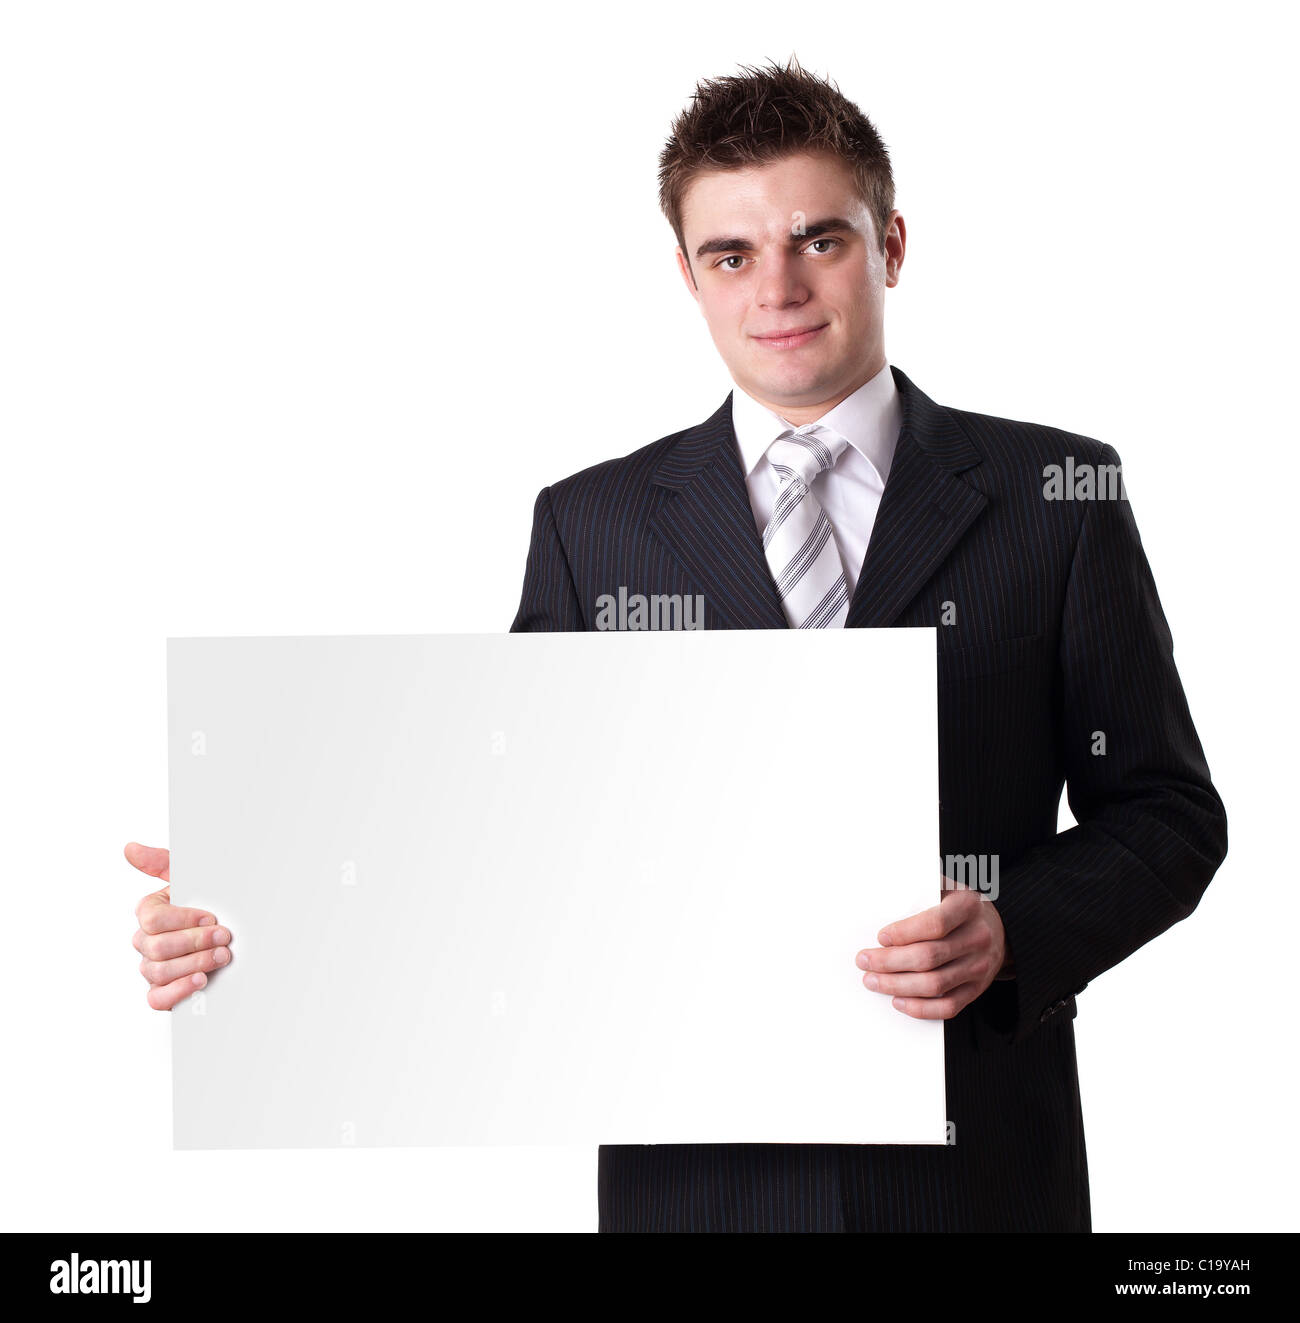 Businessman Holding Blank Sign - Stock Image